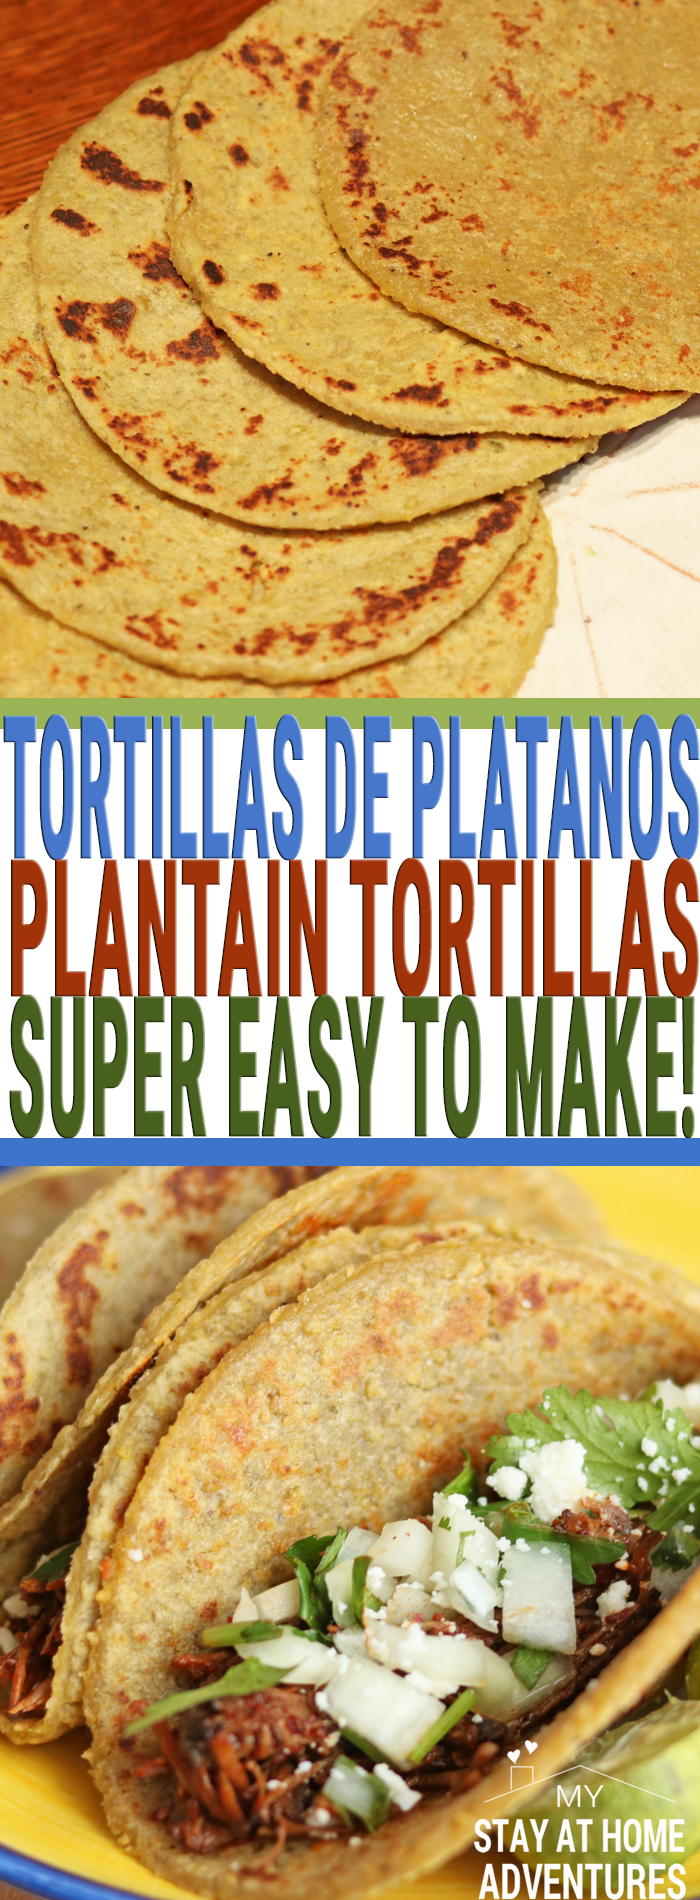 You have to try this tortillas de platanos or Plantain tortillas that are so easy to make you will be making them all the time! All you need is 3 ingredients and in no time you will have this affordable riped plantain tortillas!